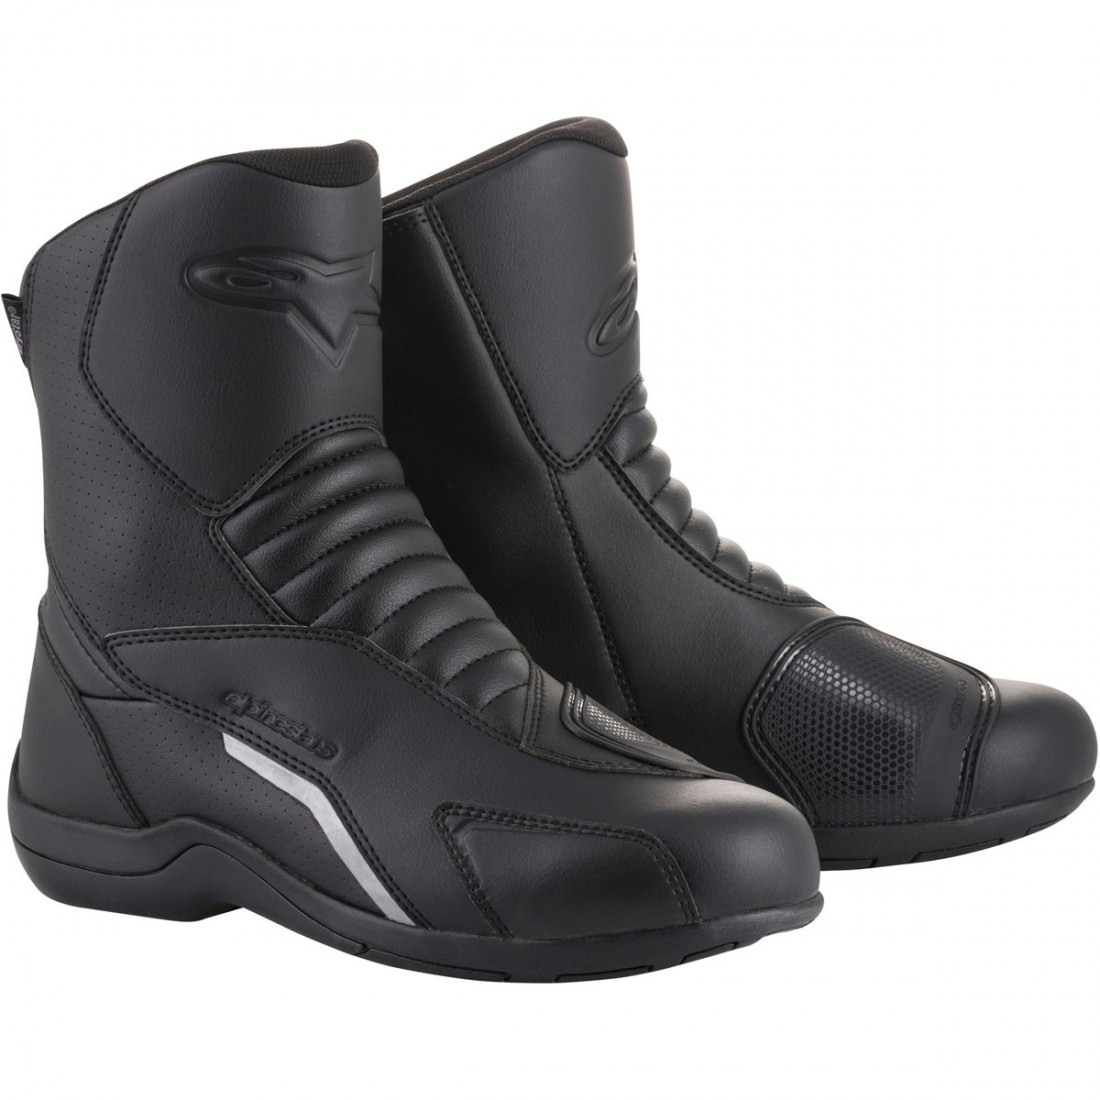 BOTTE ALPINESTARS RIDGE V2 DRYSTAR